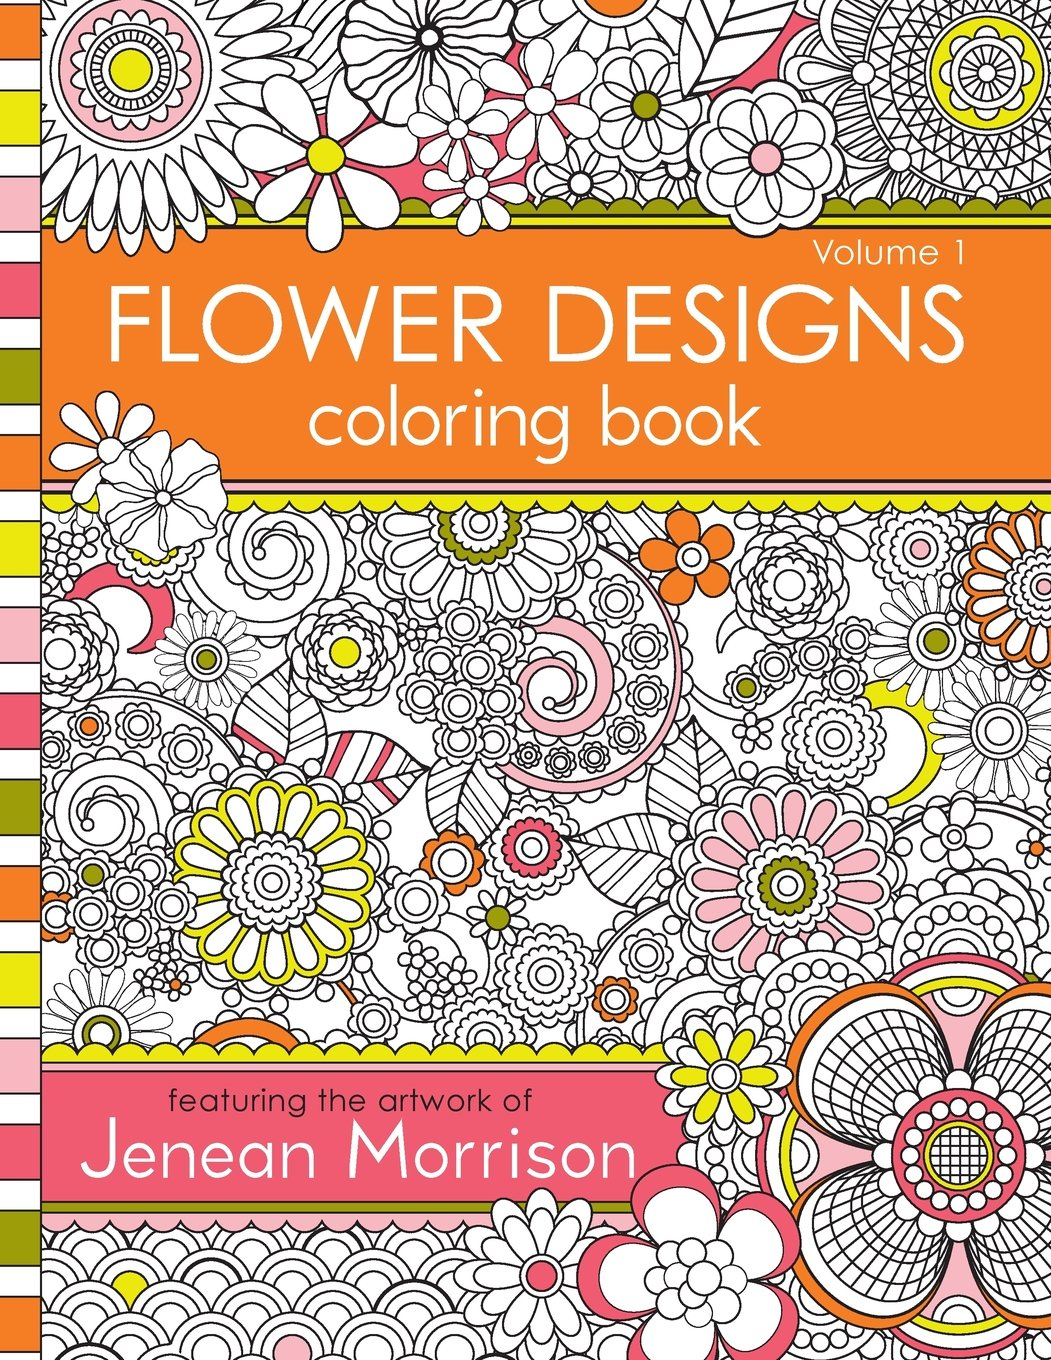 Flower designs coloring book - Amazon Com Flower Designs Coloring Book An Adult Coloring Book For Stress Relief Relaxation Meditation And Creativity 9780692631331 Jenean Morrison